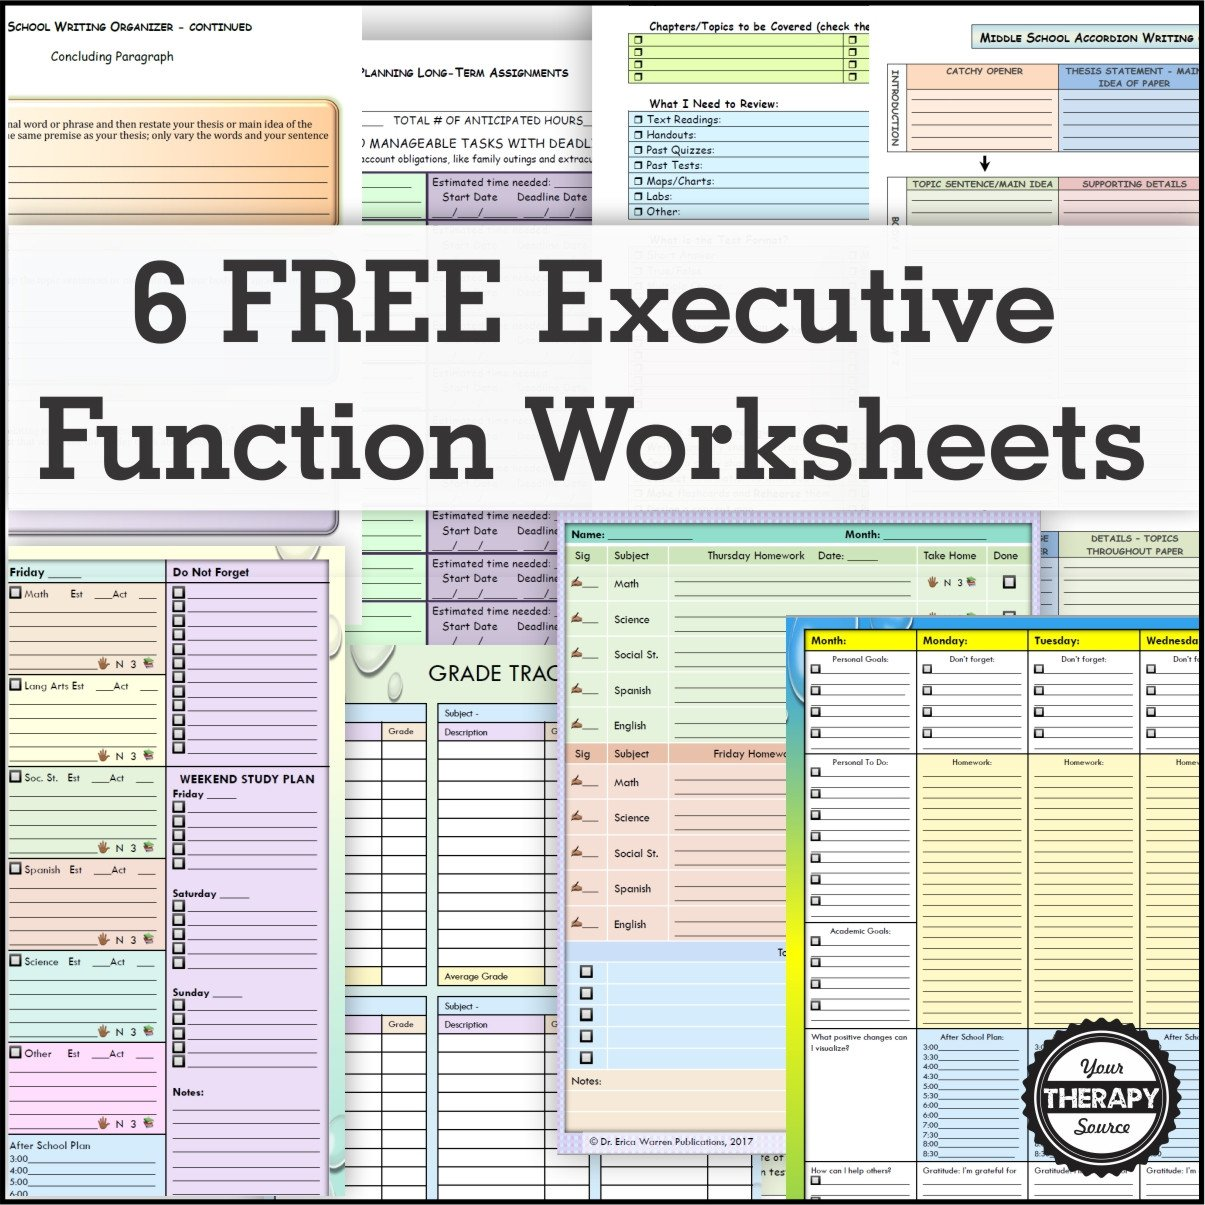 Free Study Skills Worksheets 6 Free Executive Functioning Activity Worksheets Your